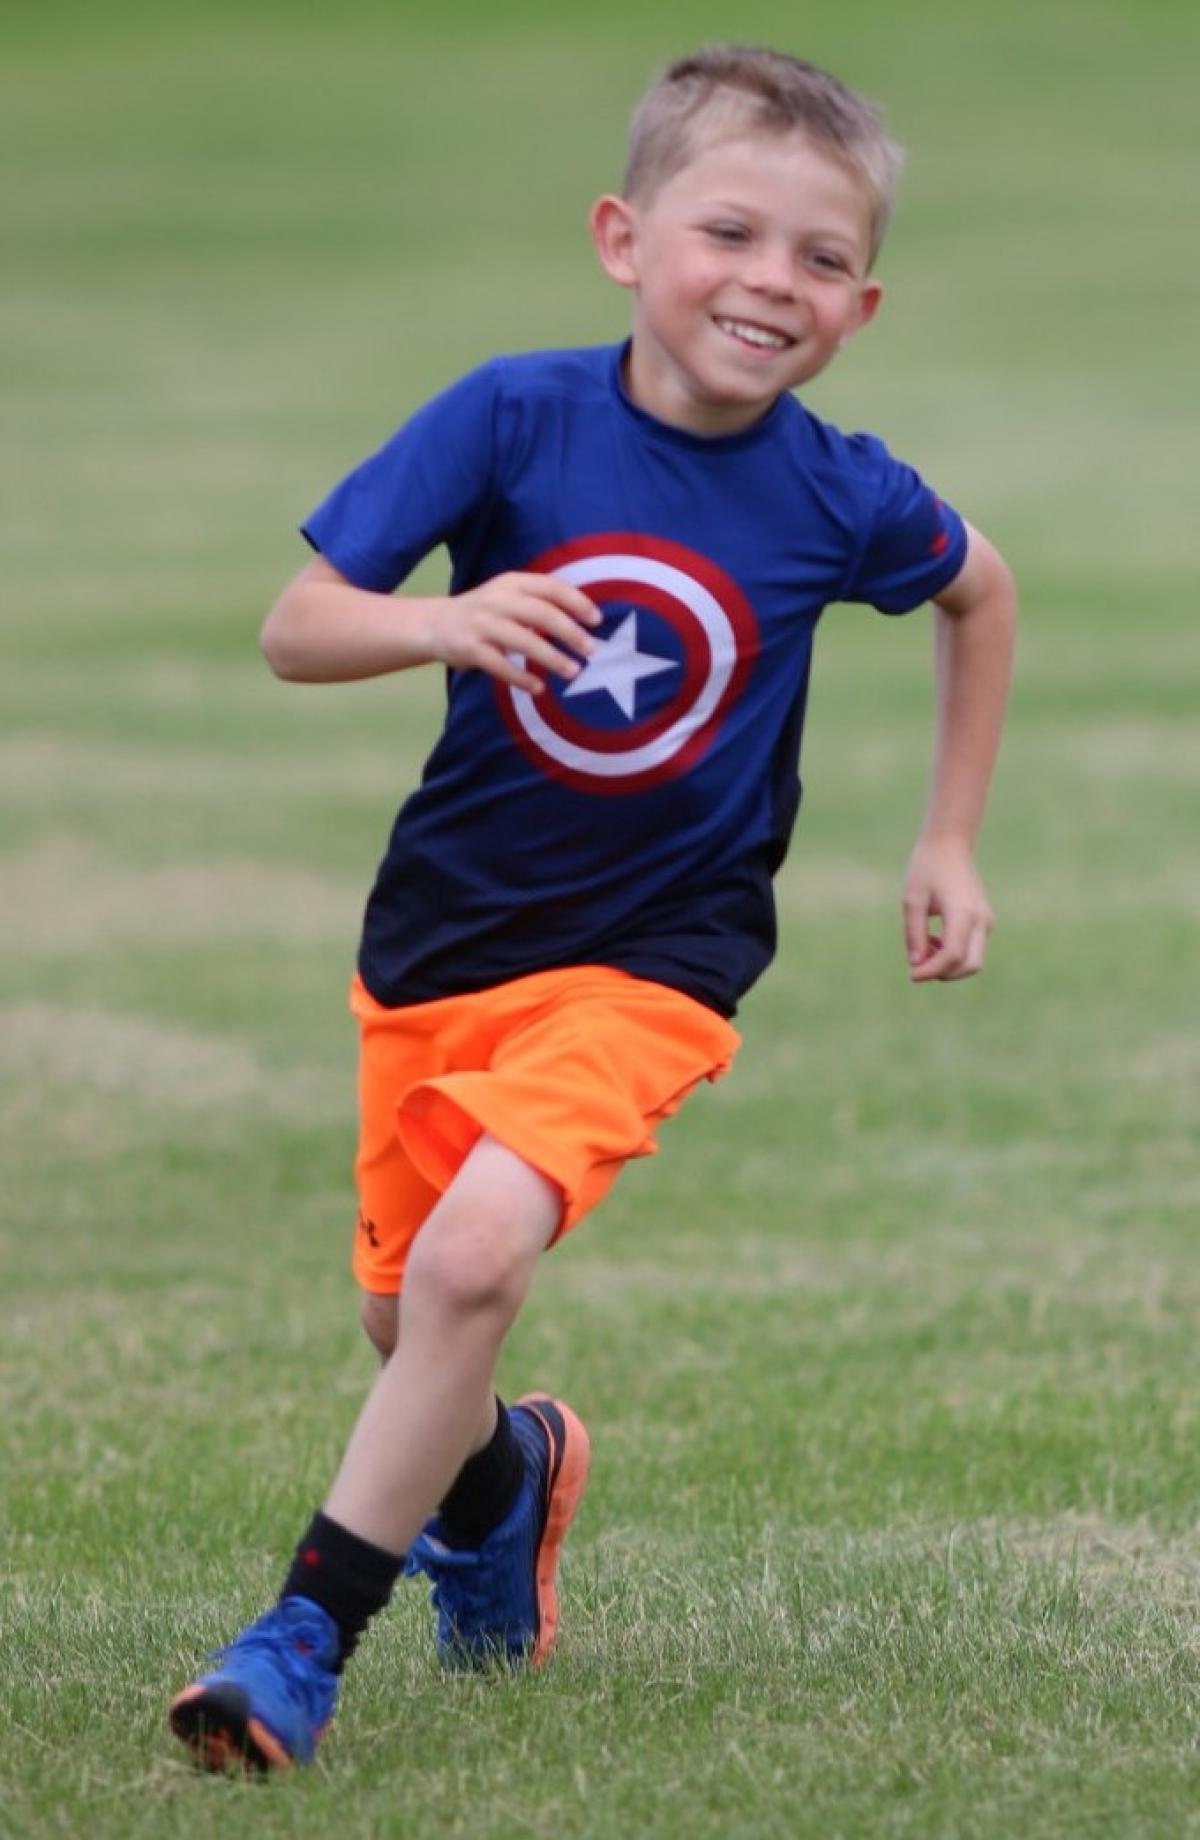 Youth Punt Pass and Kick Camp June 15 - register online